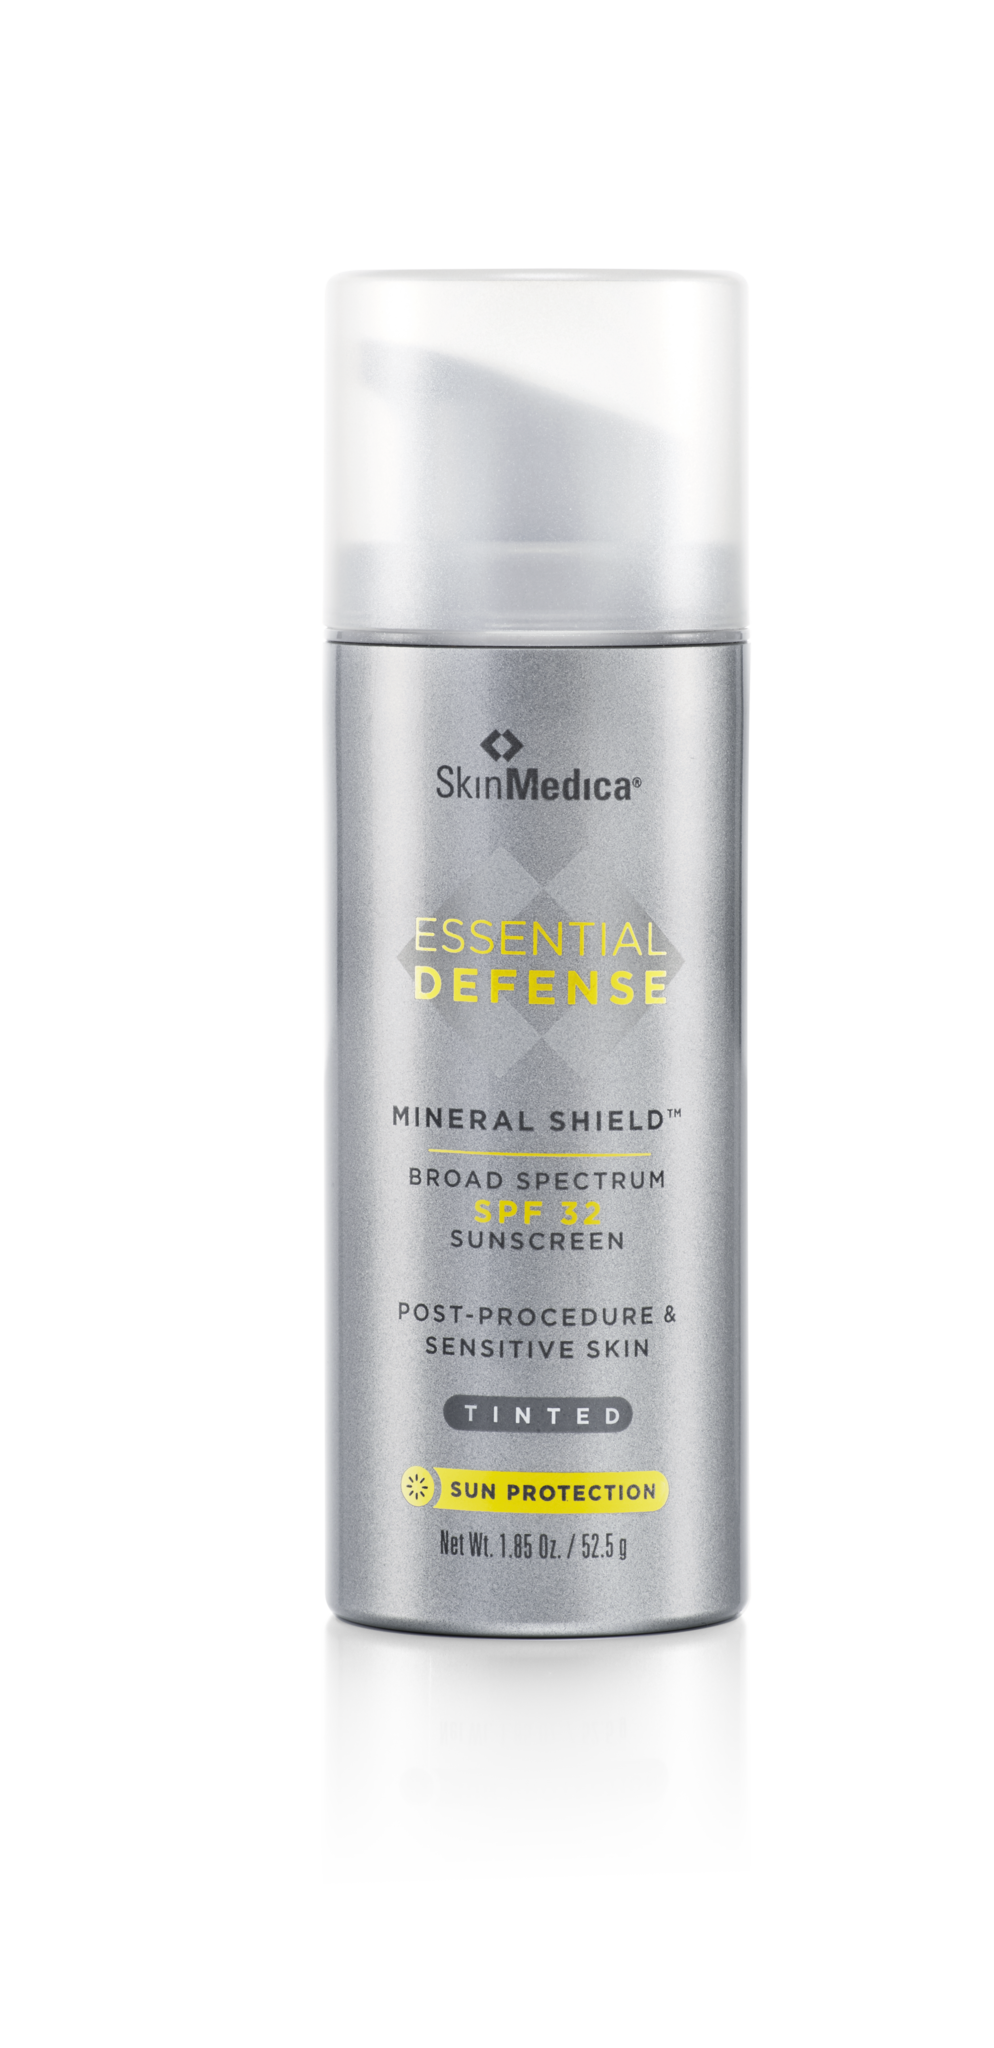 SkinMedica® Essential Defense Mineral Shield Broad Spectrum SPF 32 (Tinted) (1.85 oz)